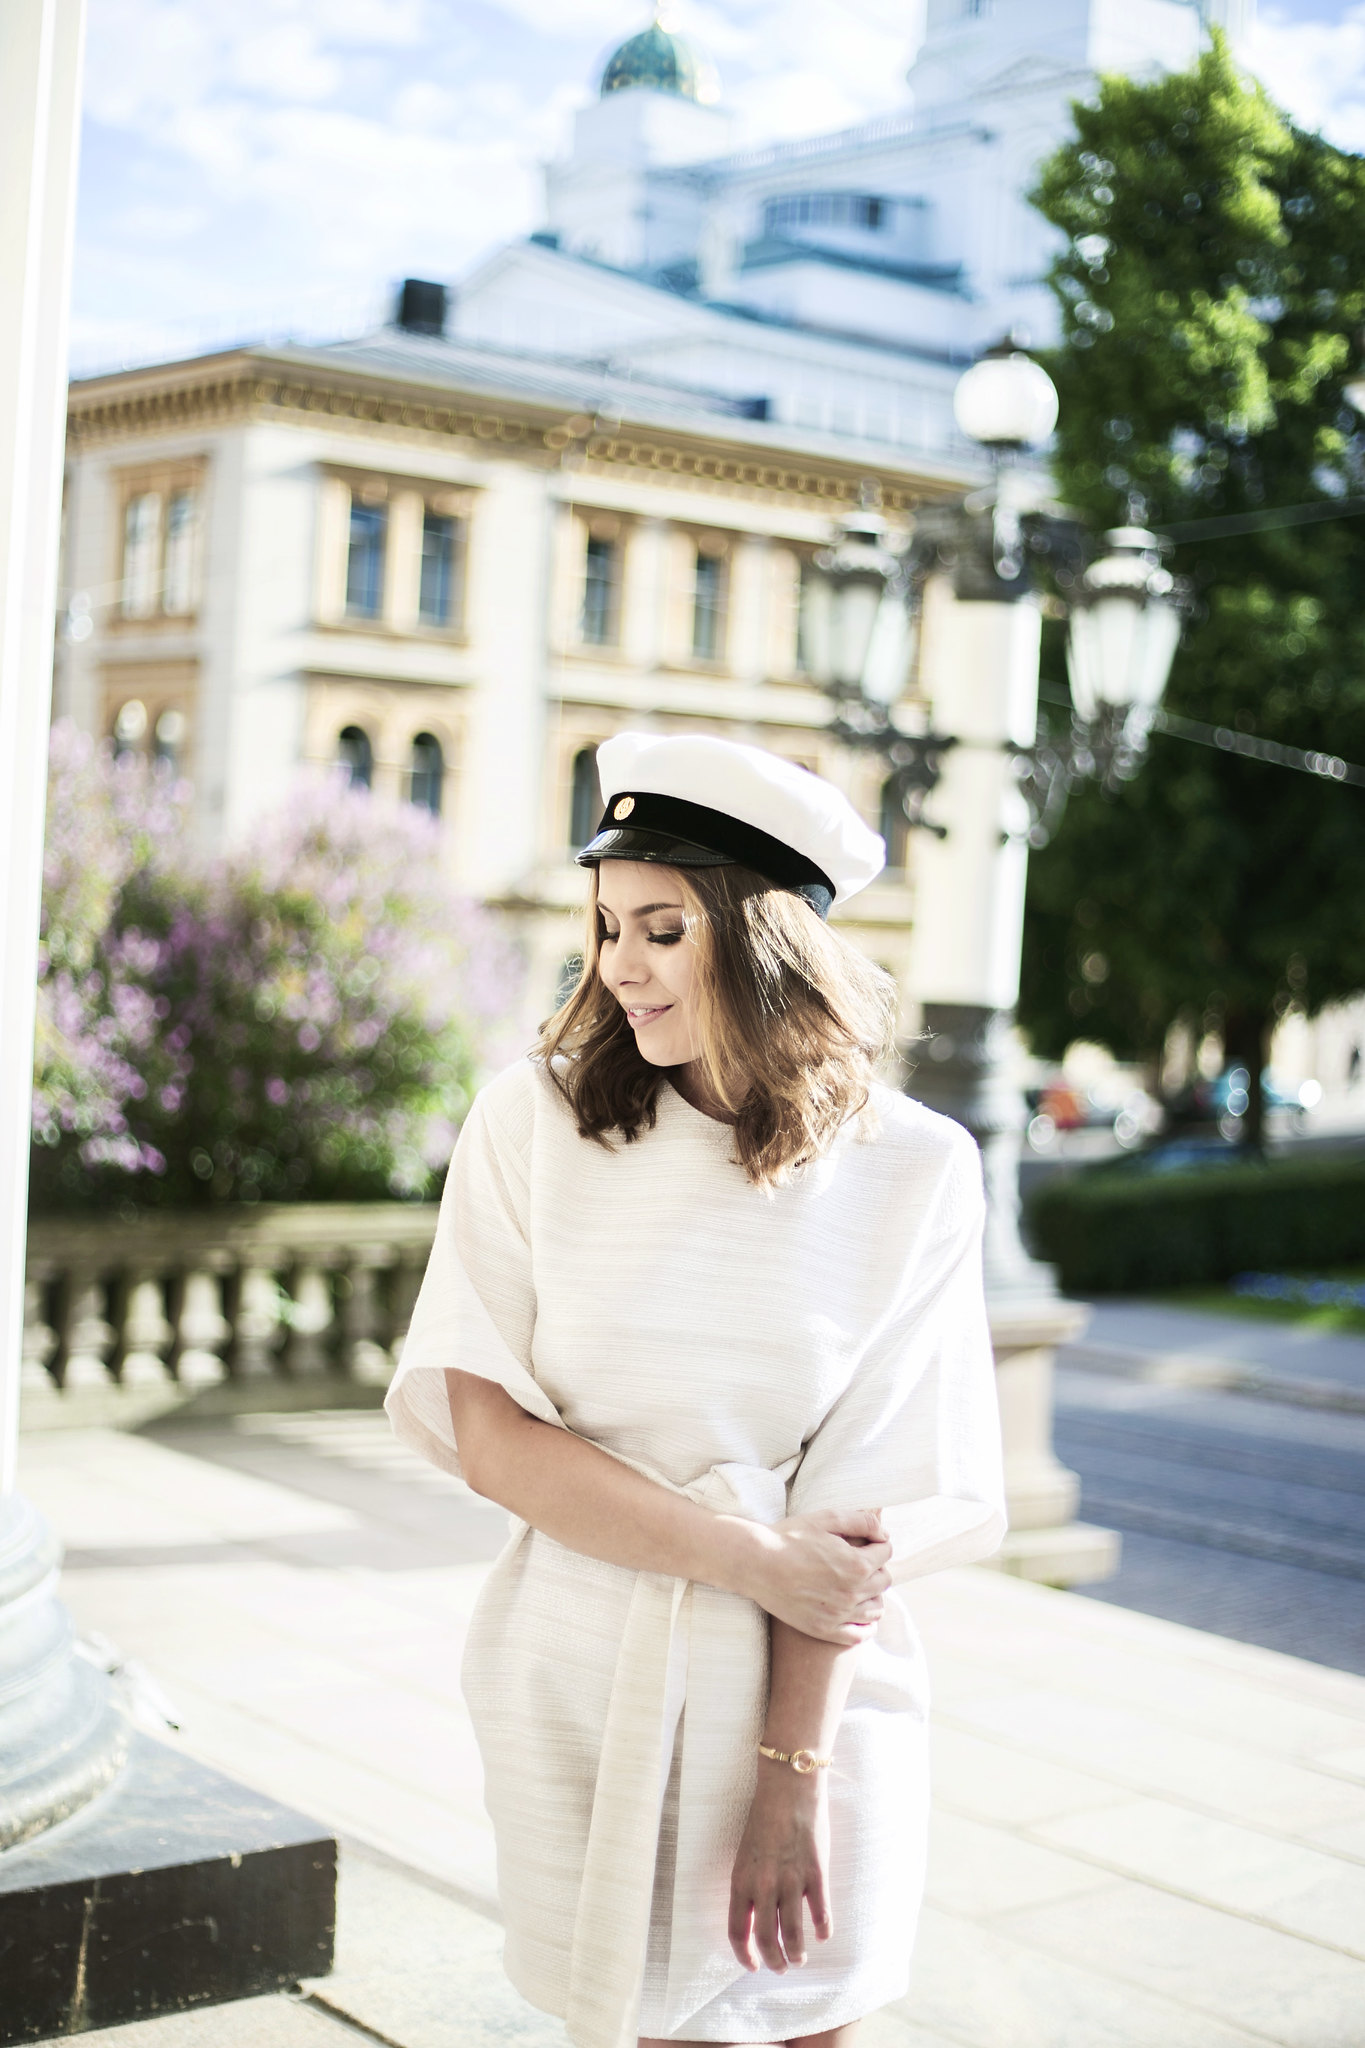 graduation-dress-asos-linen-white-hat-blogger